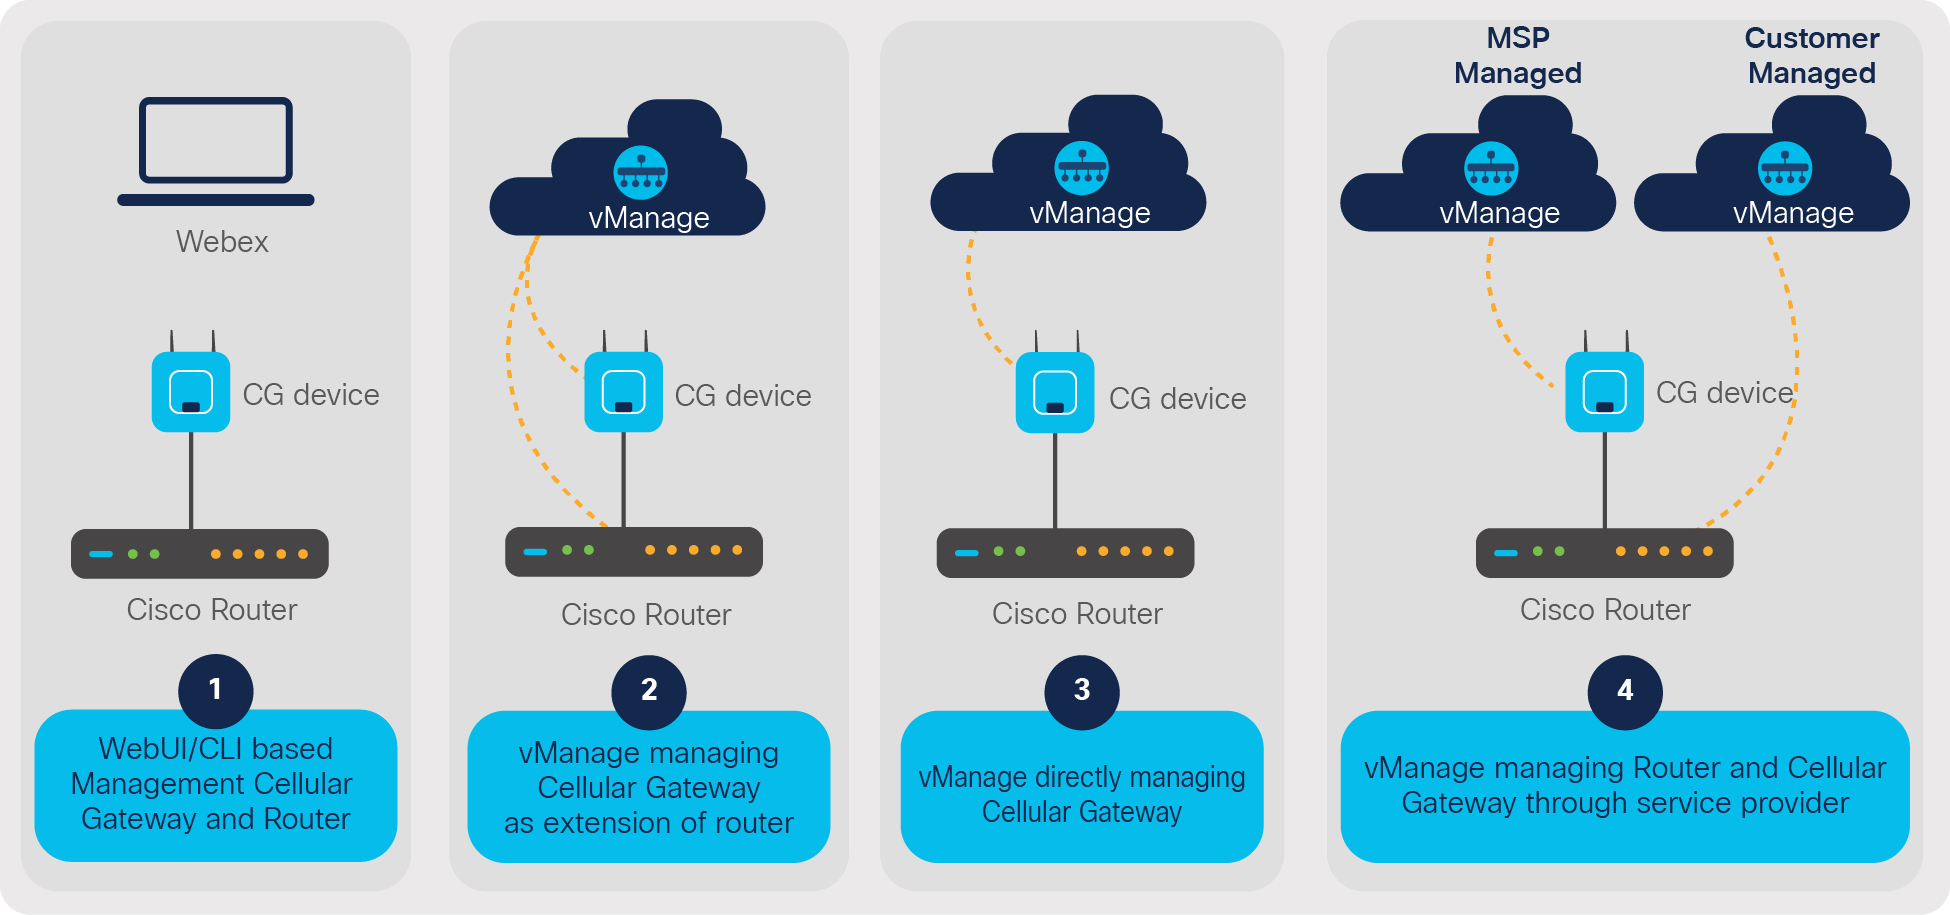 Management options for the Cisco Catalyst Cellular Gateway